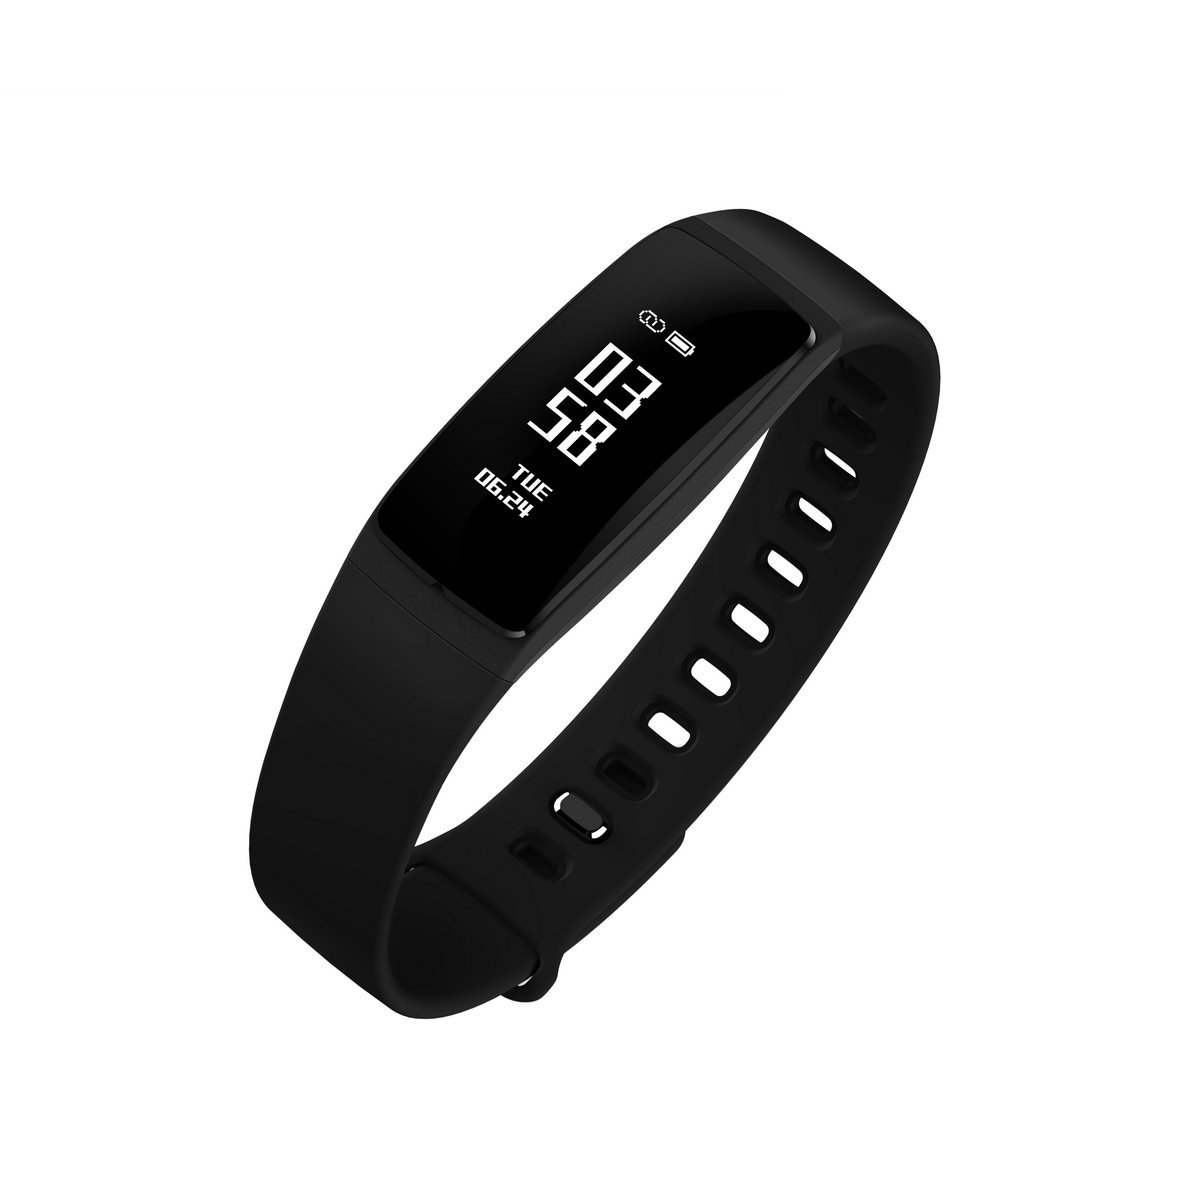 V07s Fitness Smart  Tracker with Heart Rate Monitor, Activity Tracker for Android IOS